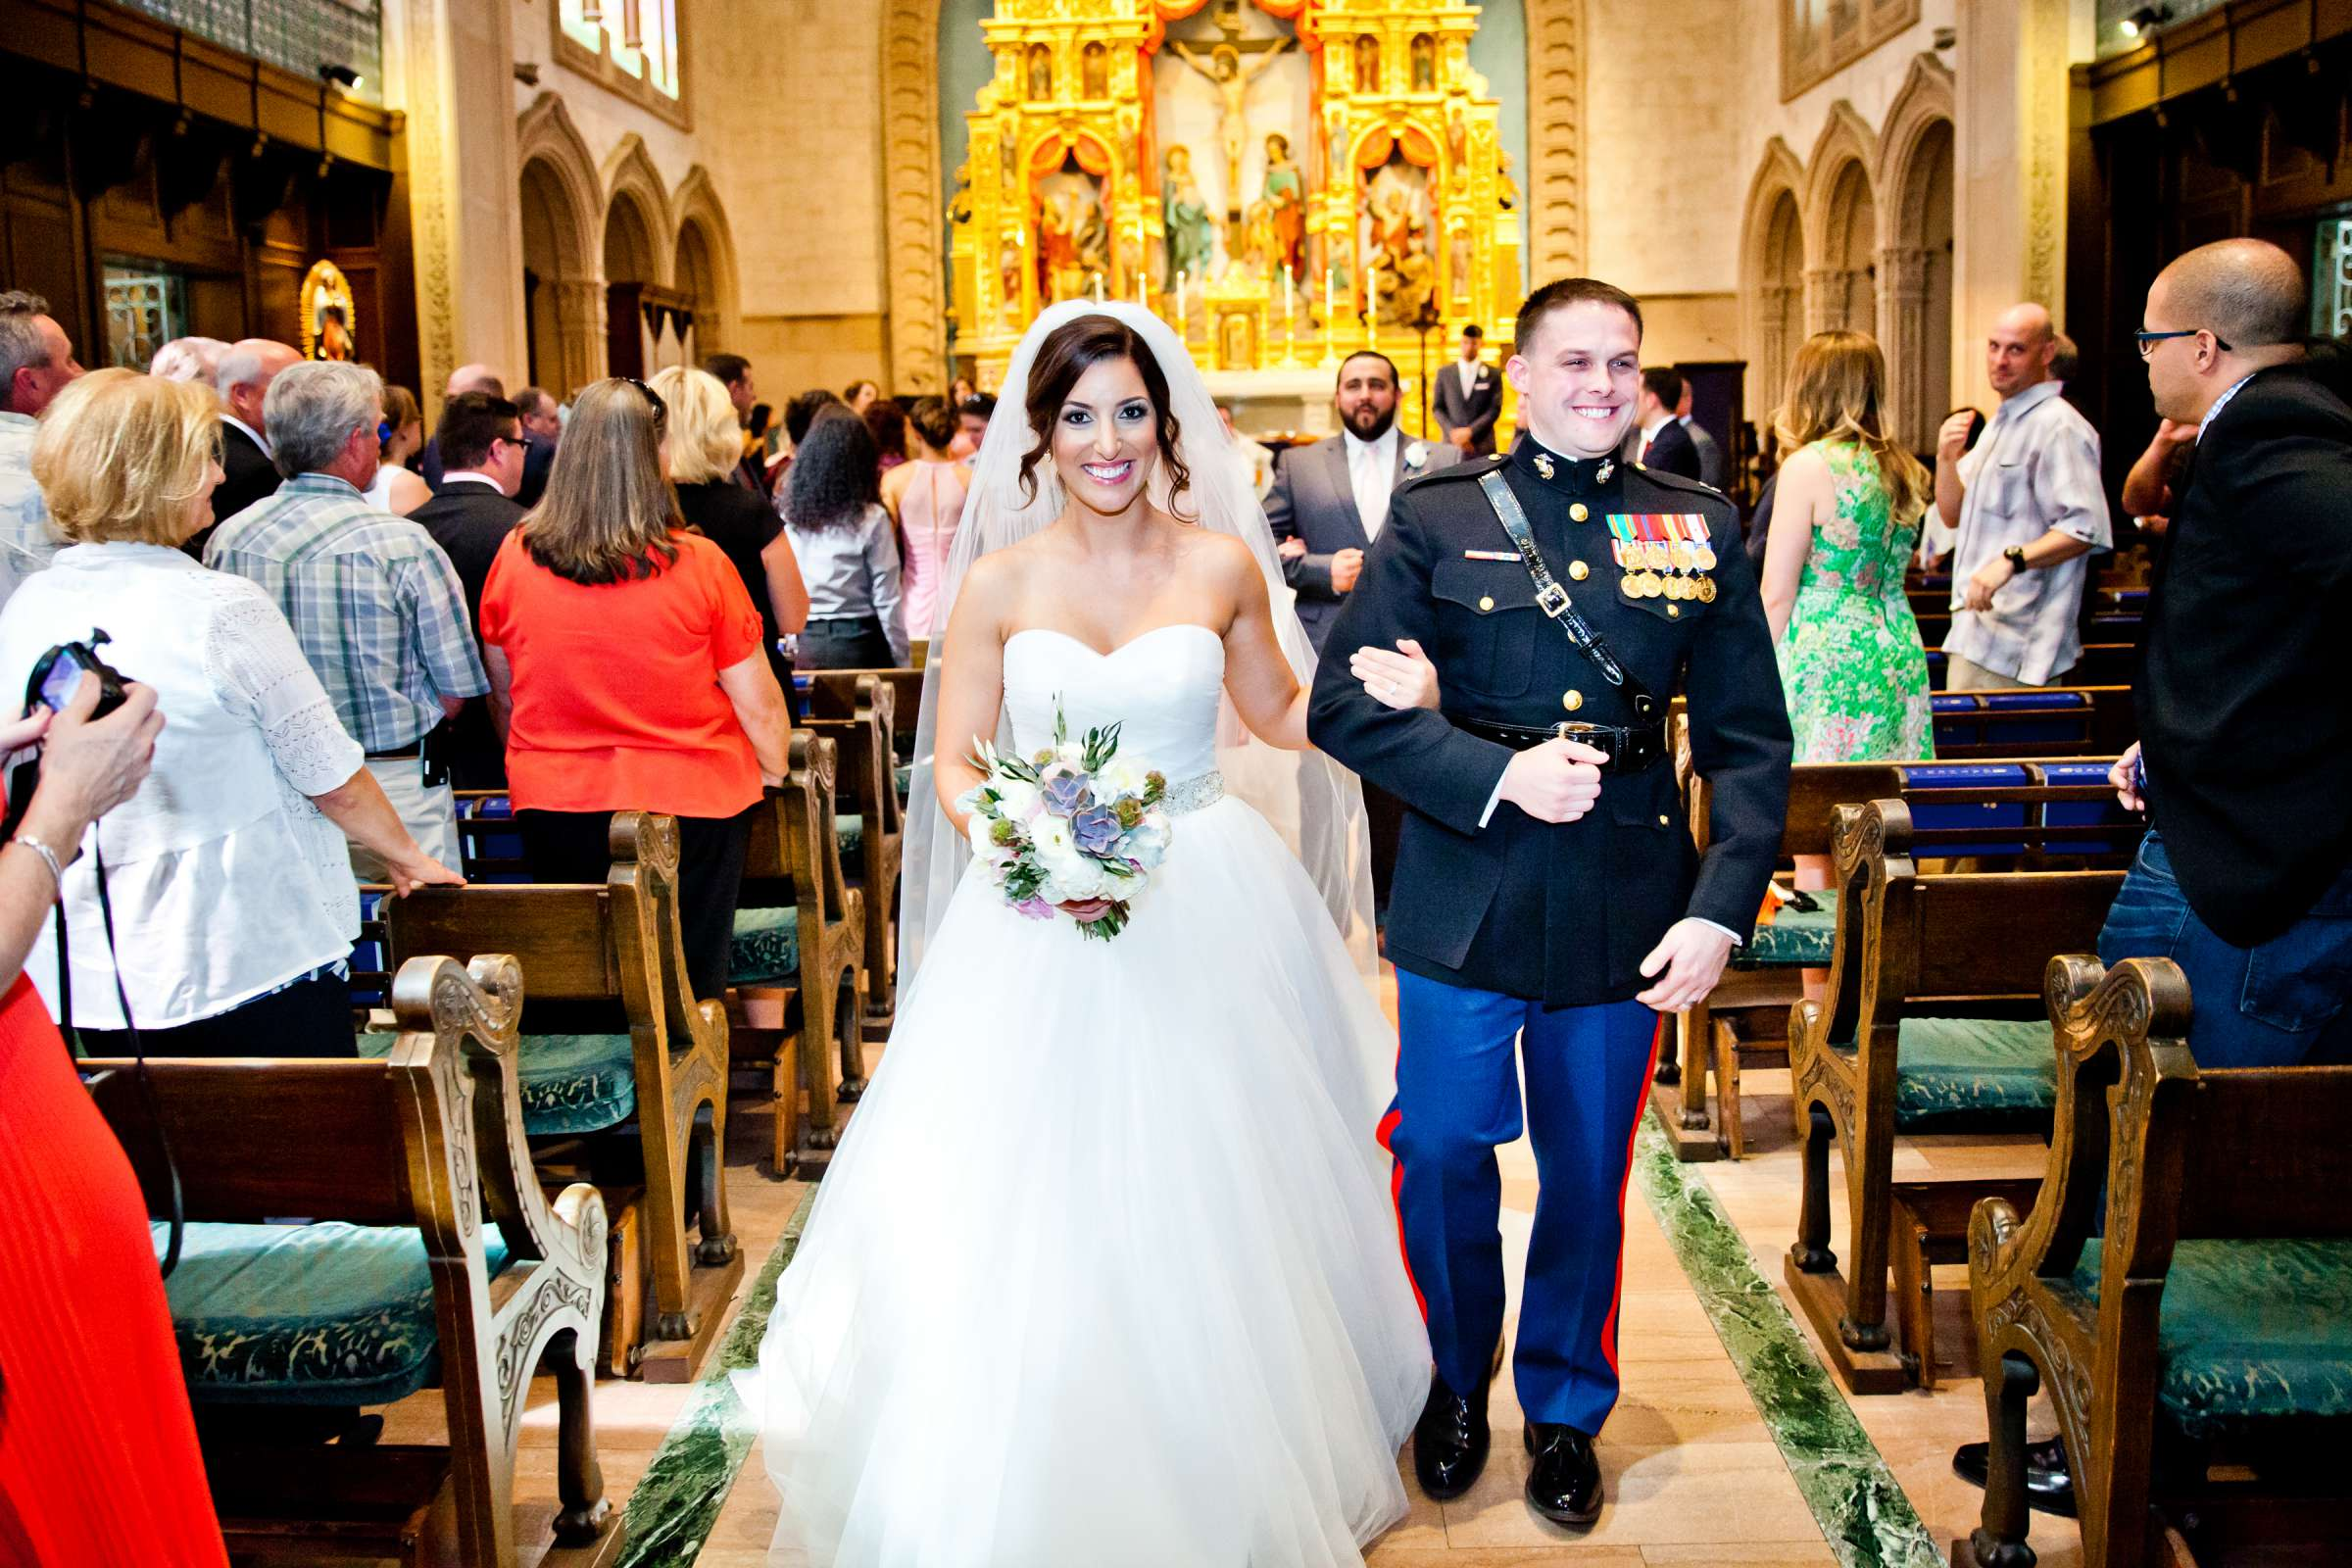 Admiral Kidd Club Wedding coordinated by Founders Chapel, Ashley and Andrew Wedding Photo #145444 by True Photography